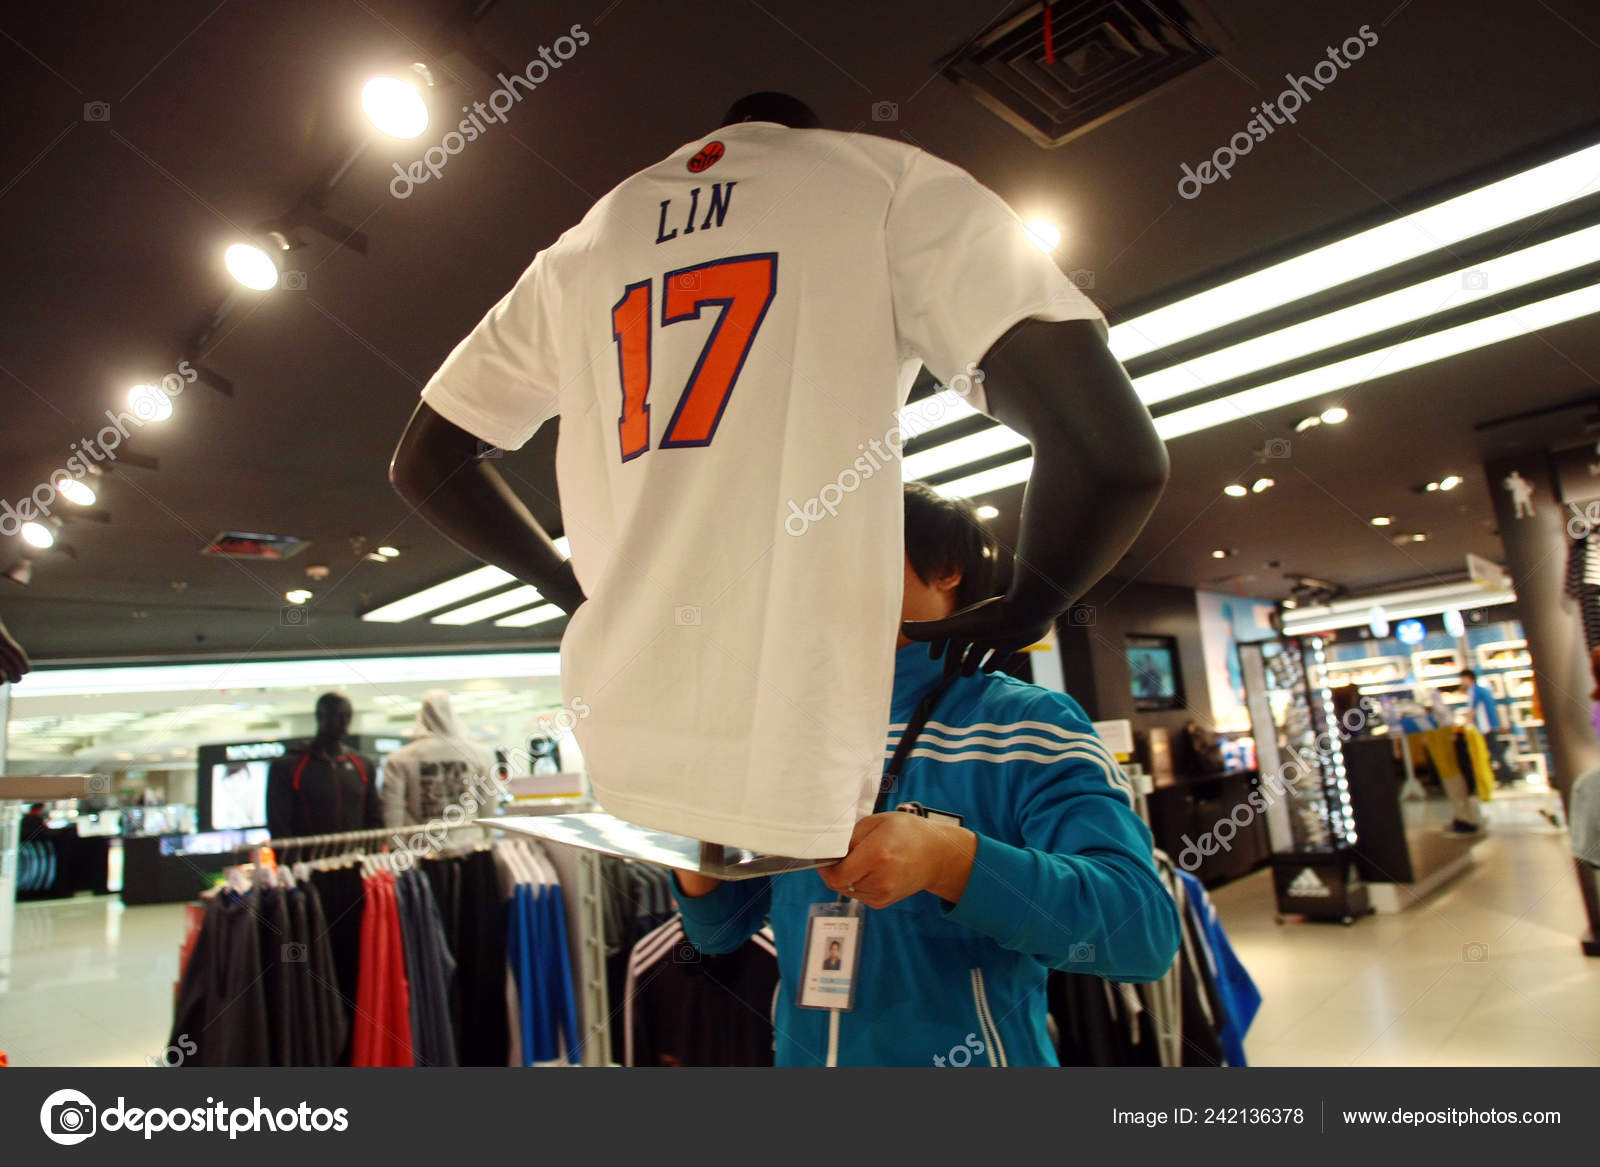 competitive price c0bed 4e4e8 Shirt New York Knicks Jeremy Lin Display Sports Store ...